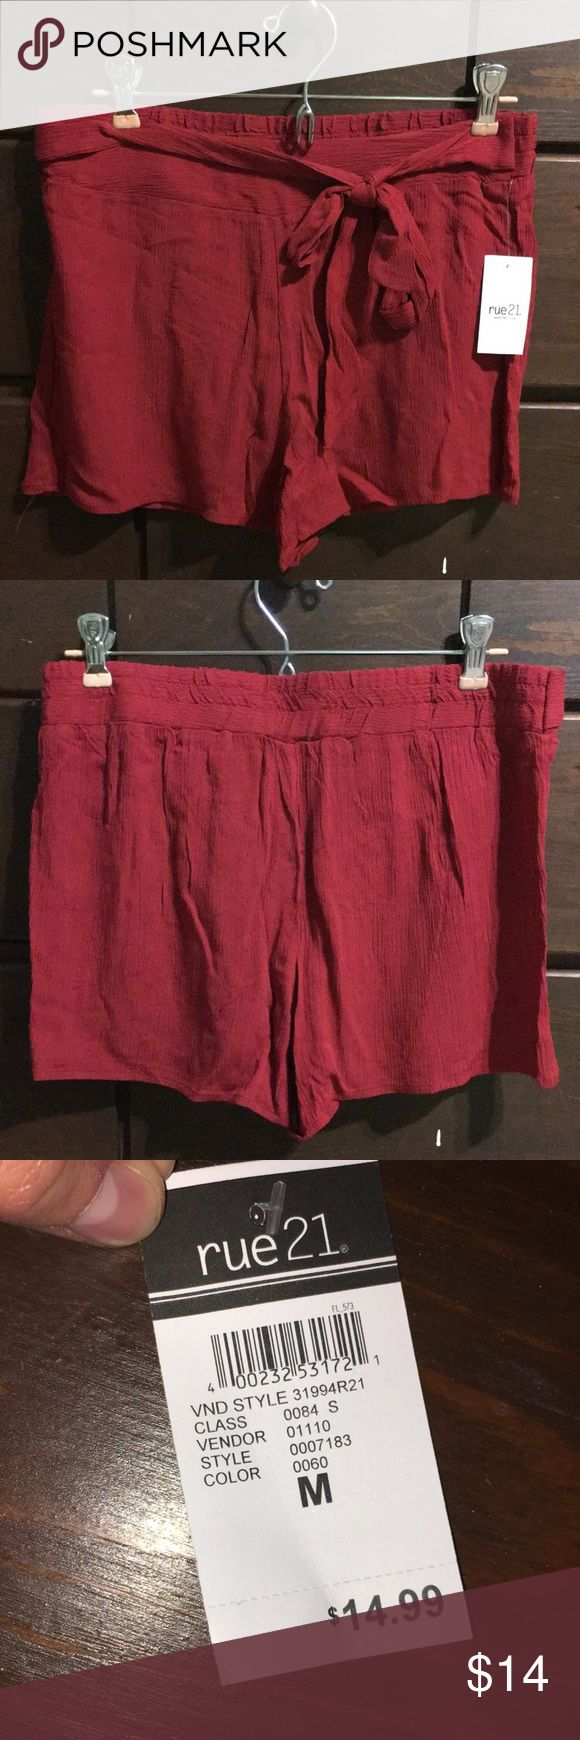 Rue 21 Maroon Dress Shorts Really cute dressy, maroon shorts. Never worn with tags still attached. Rue 21 Shorts